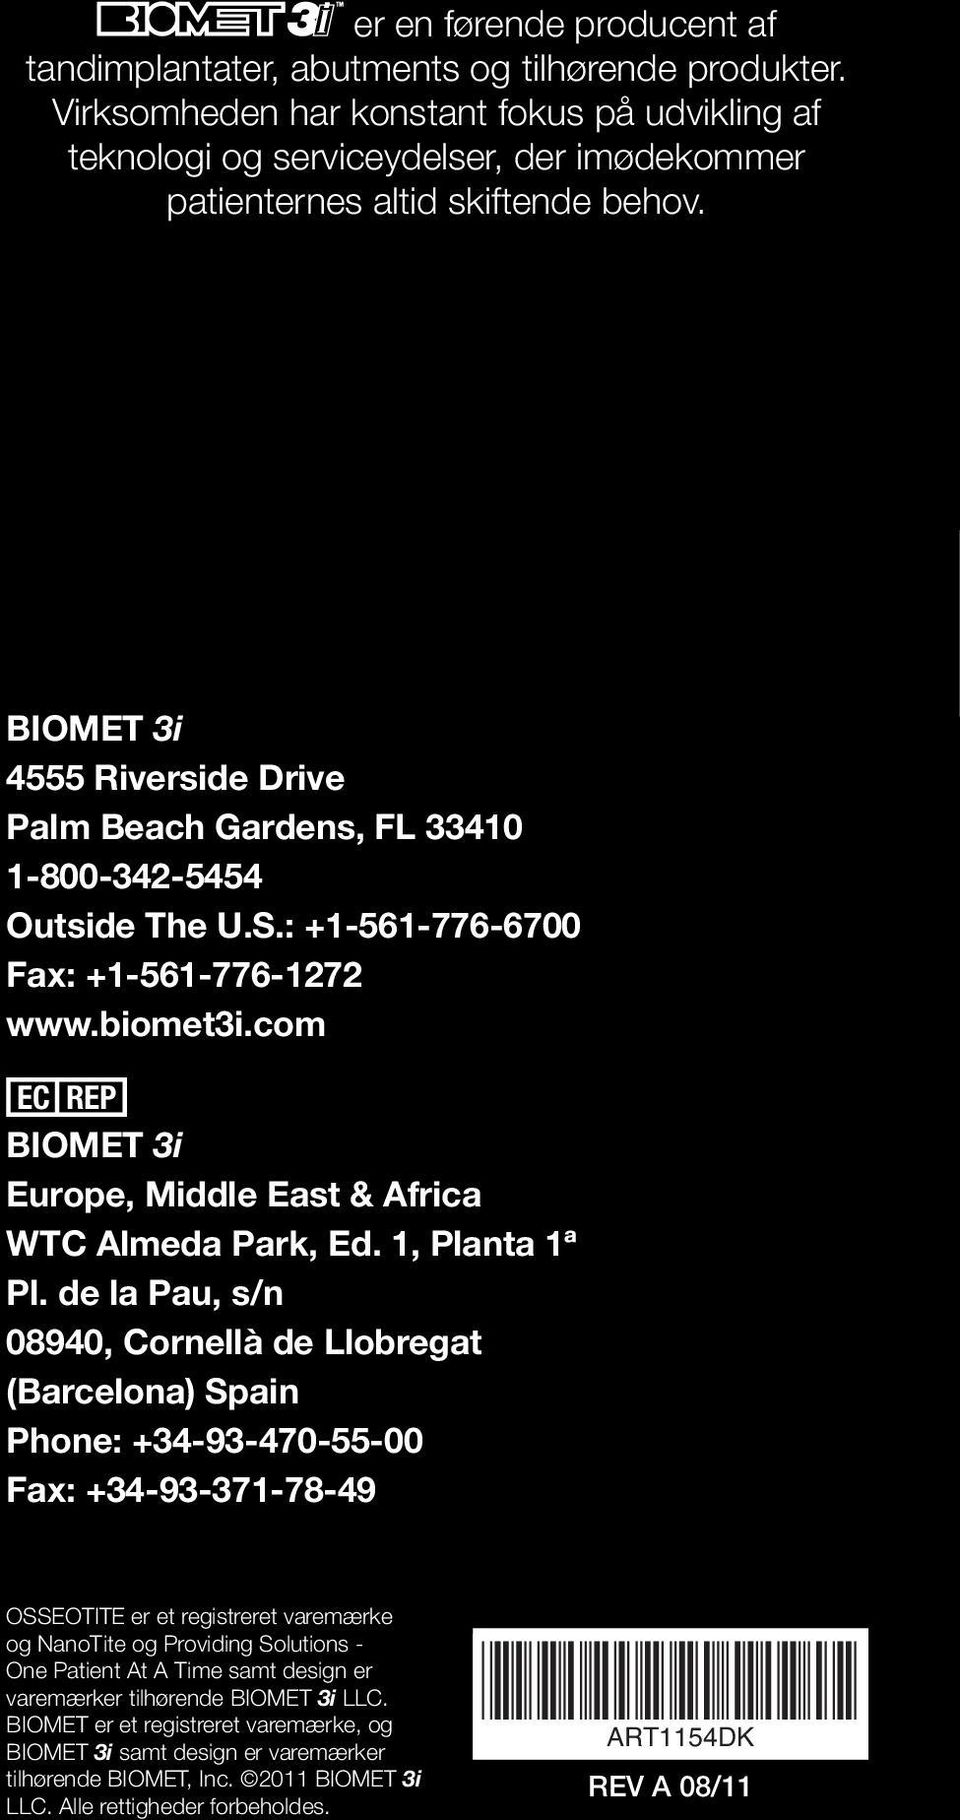 BIOMET 3i 4555 Riverside Drive Palm Beach Gardens, FL 33410 1-800-342-5454 Outside The U.S.: +1-561-776-6700 Fax: +1-561-776-1272 www.biomet3i.